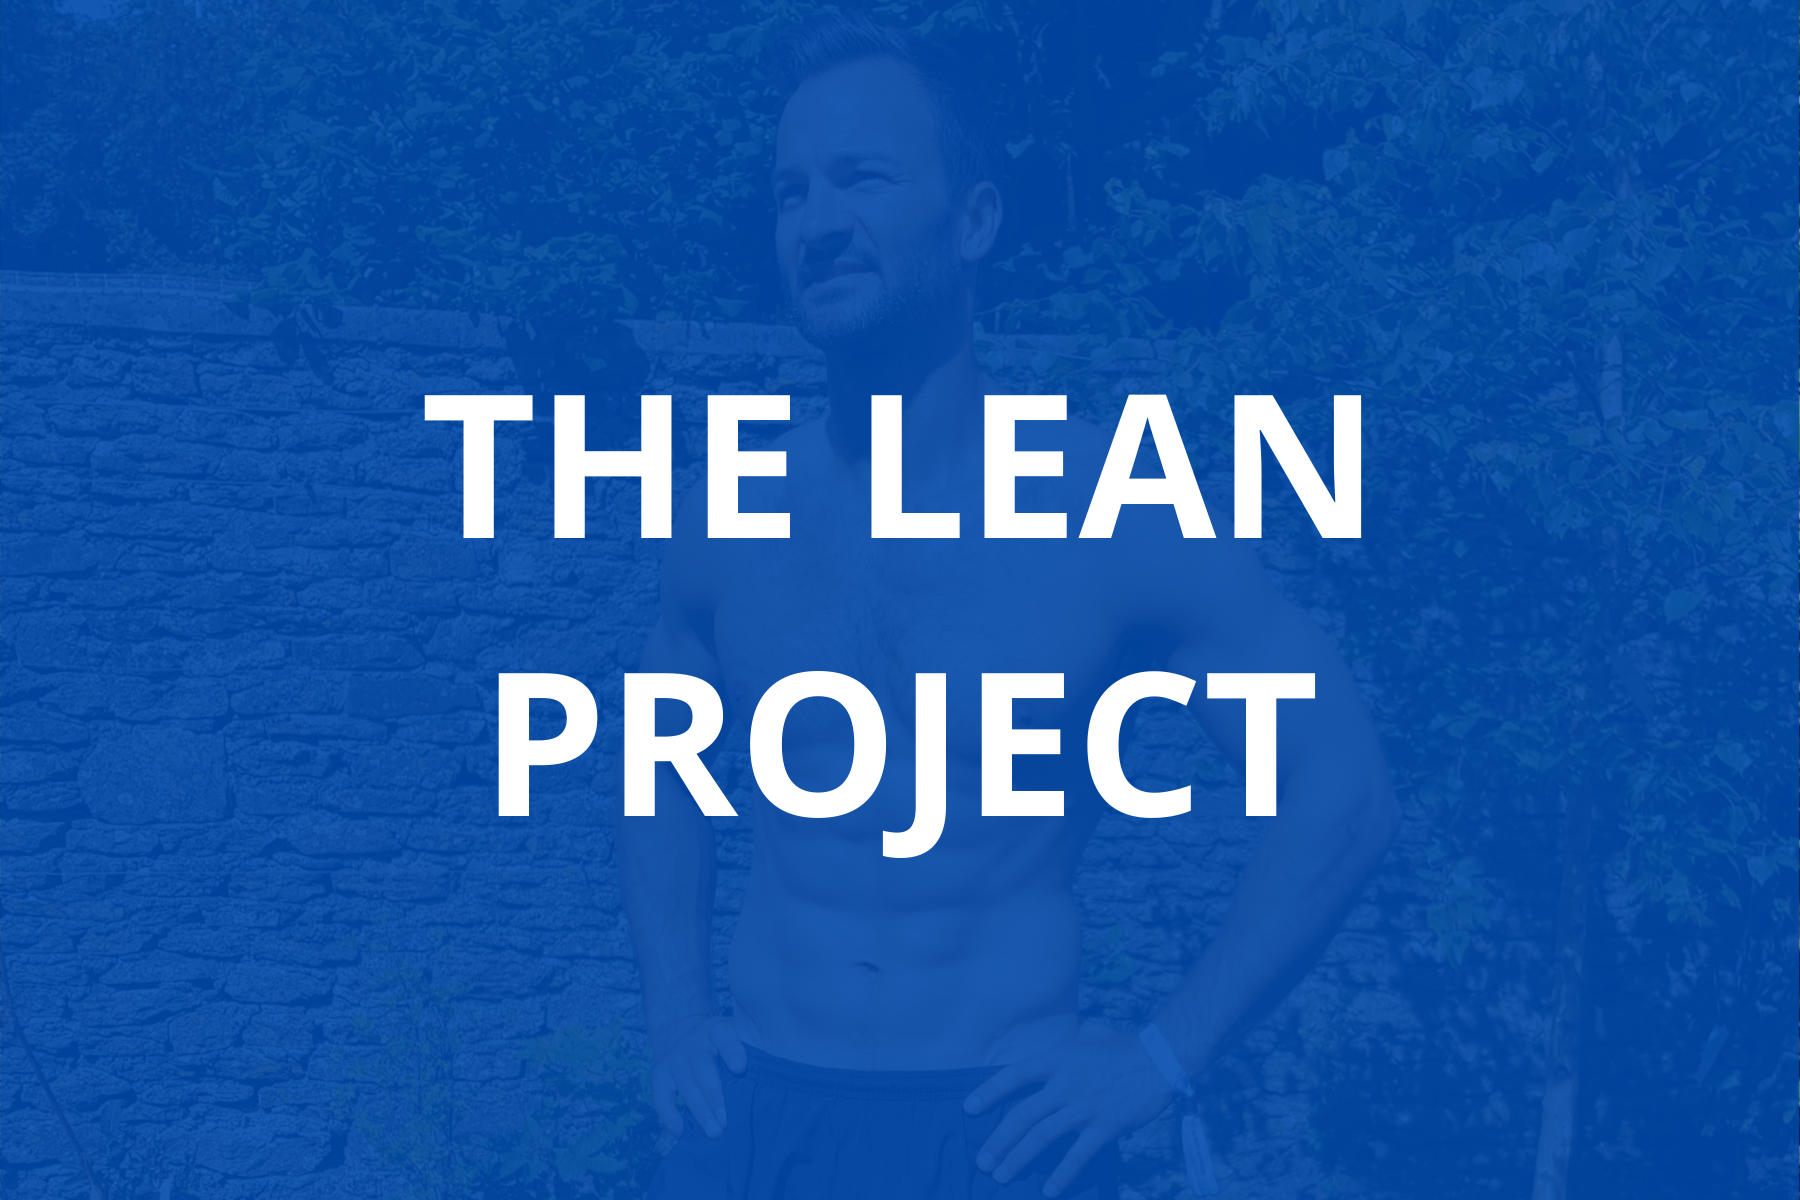 The Lean Project